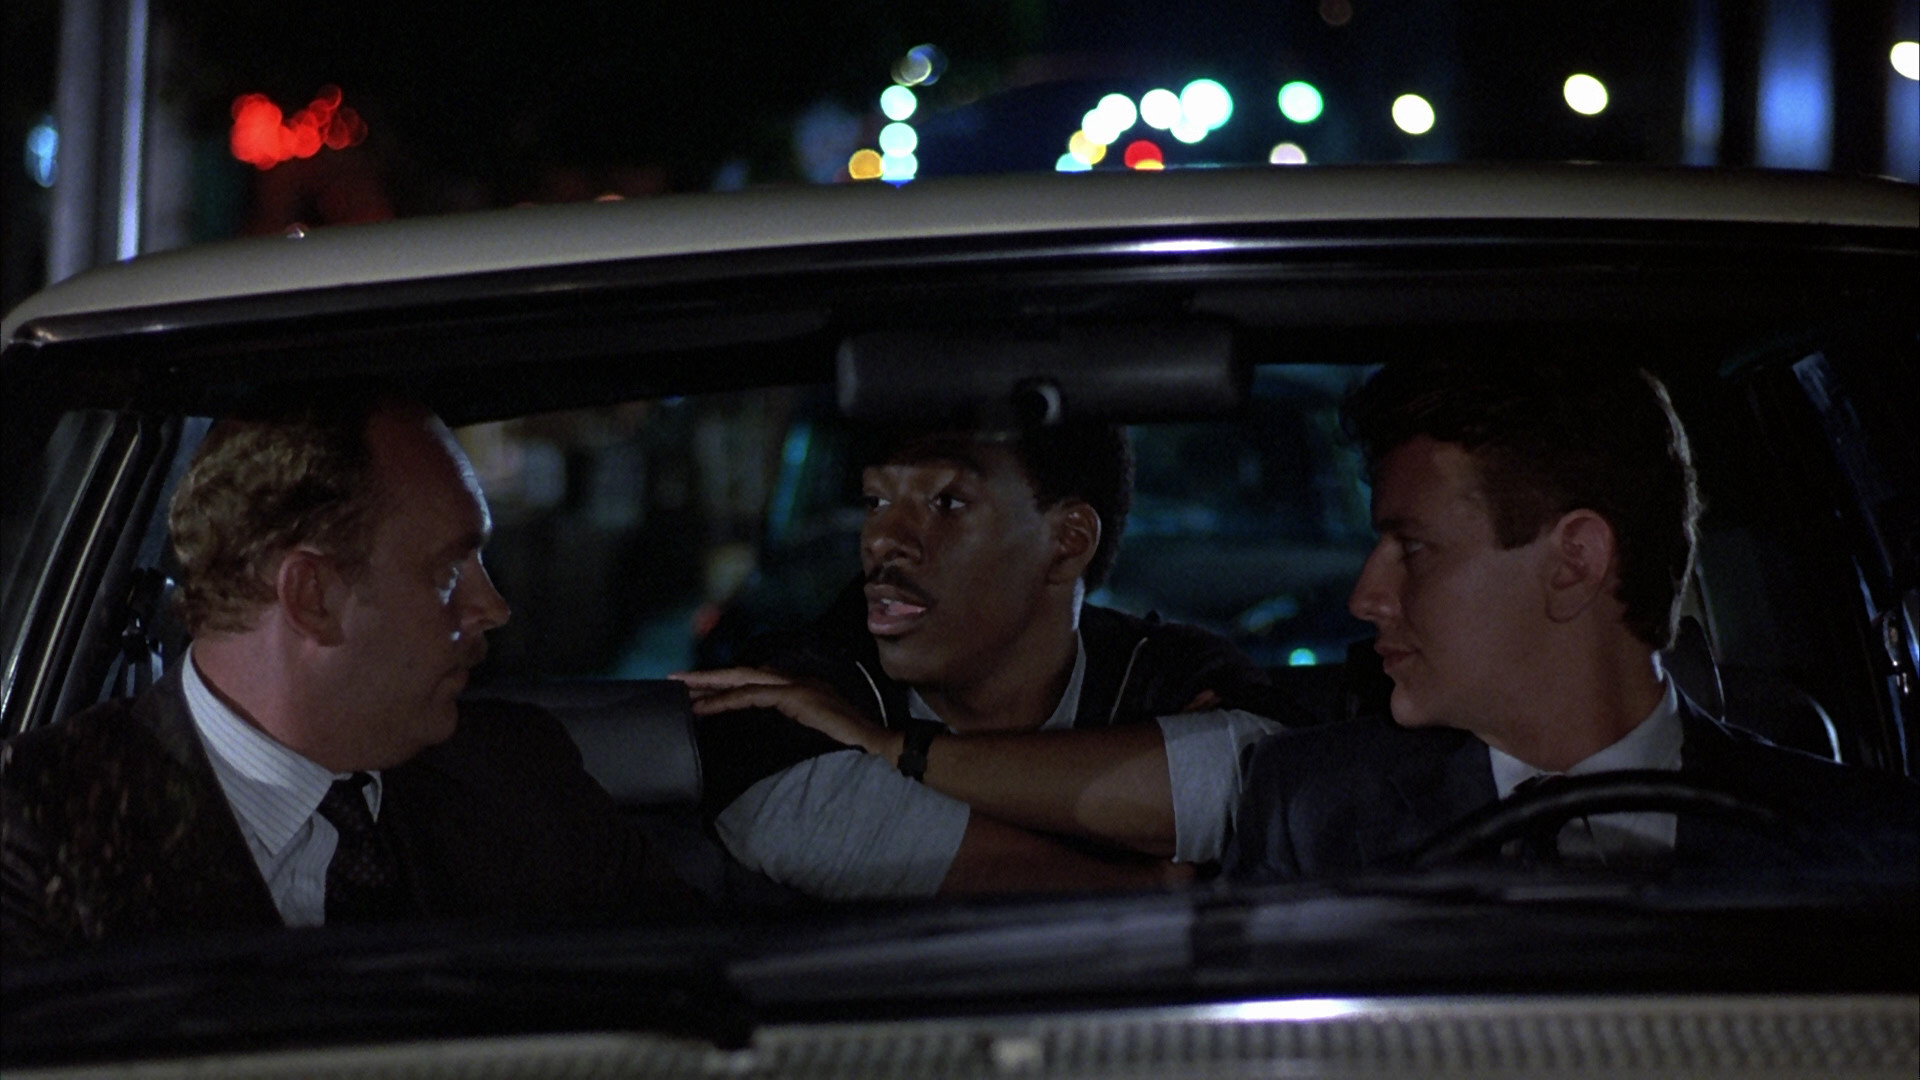 HQ Beverly Hills Cop Wallpapers | File 312.77Kb